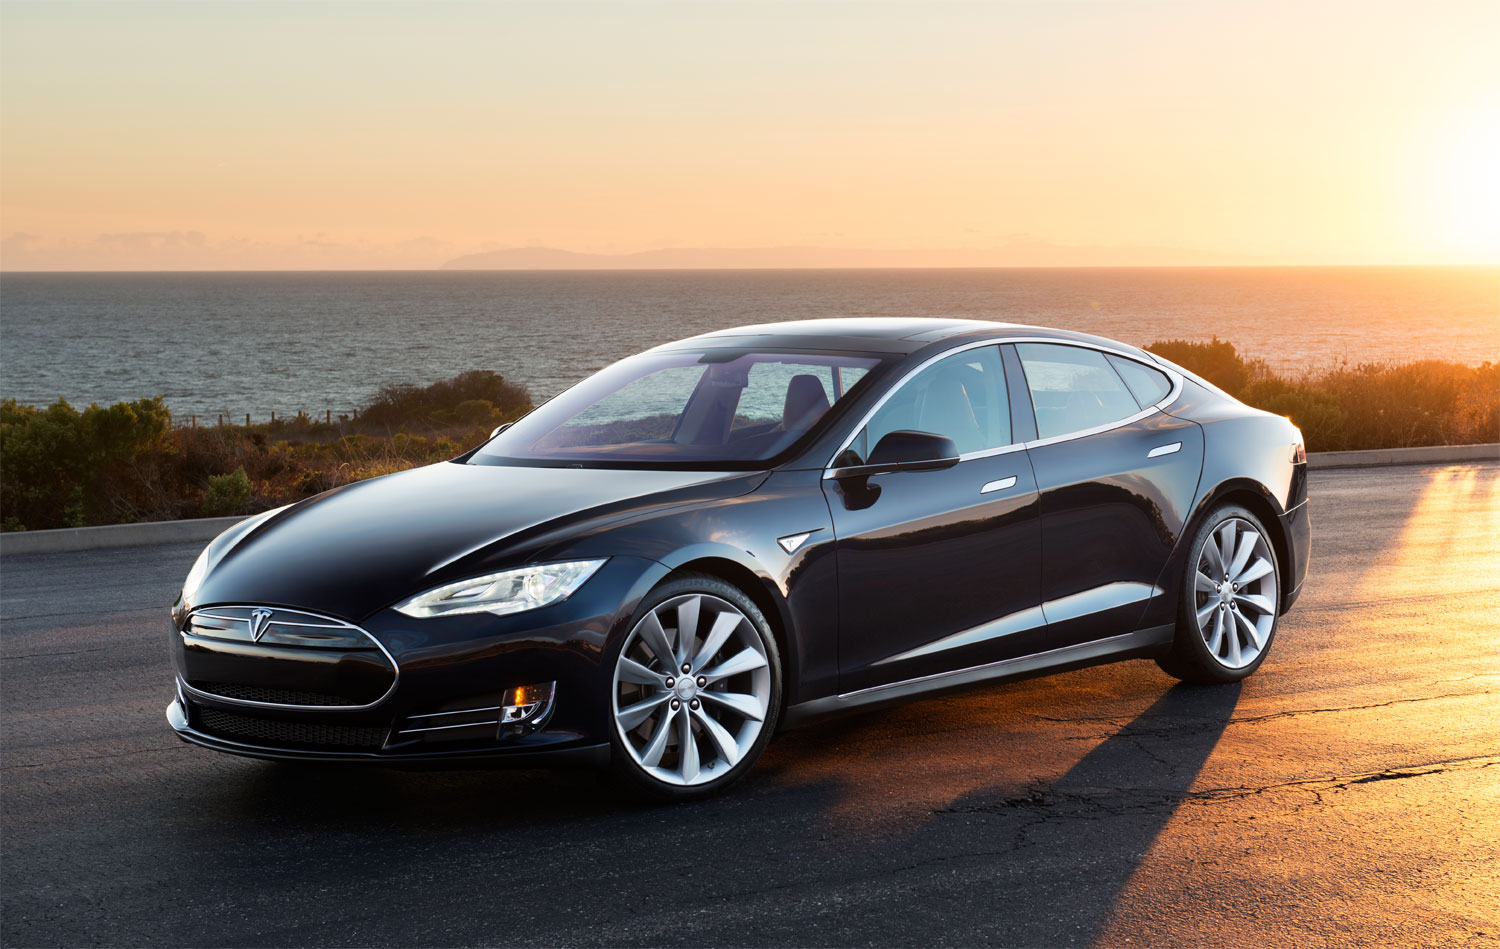 The oil companies used to think of electric cars as a joke – but thanks to the Tesla Model S, they're not laughing now